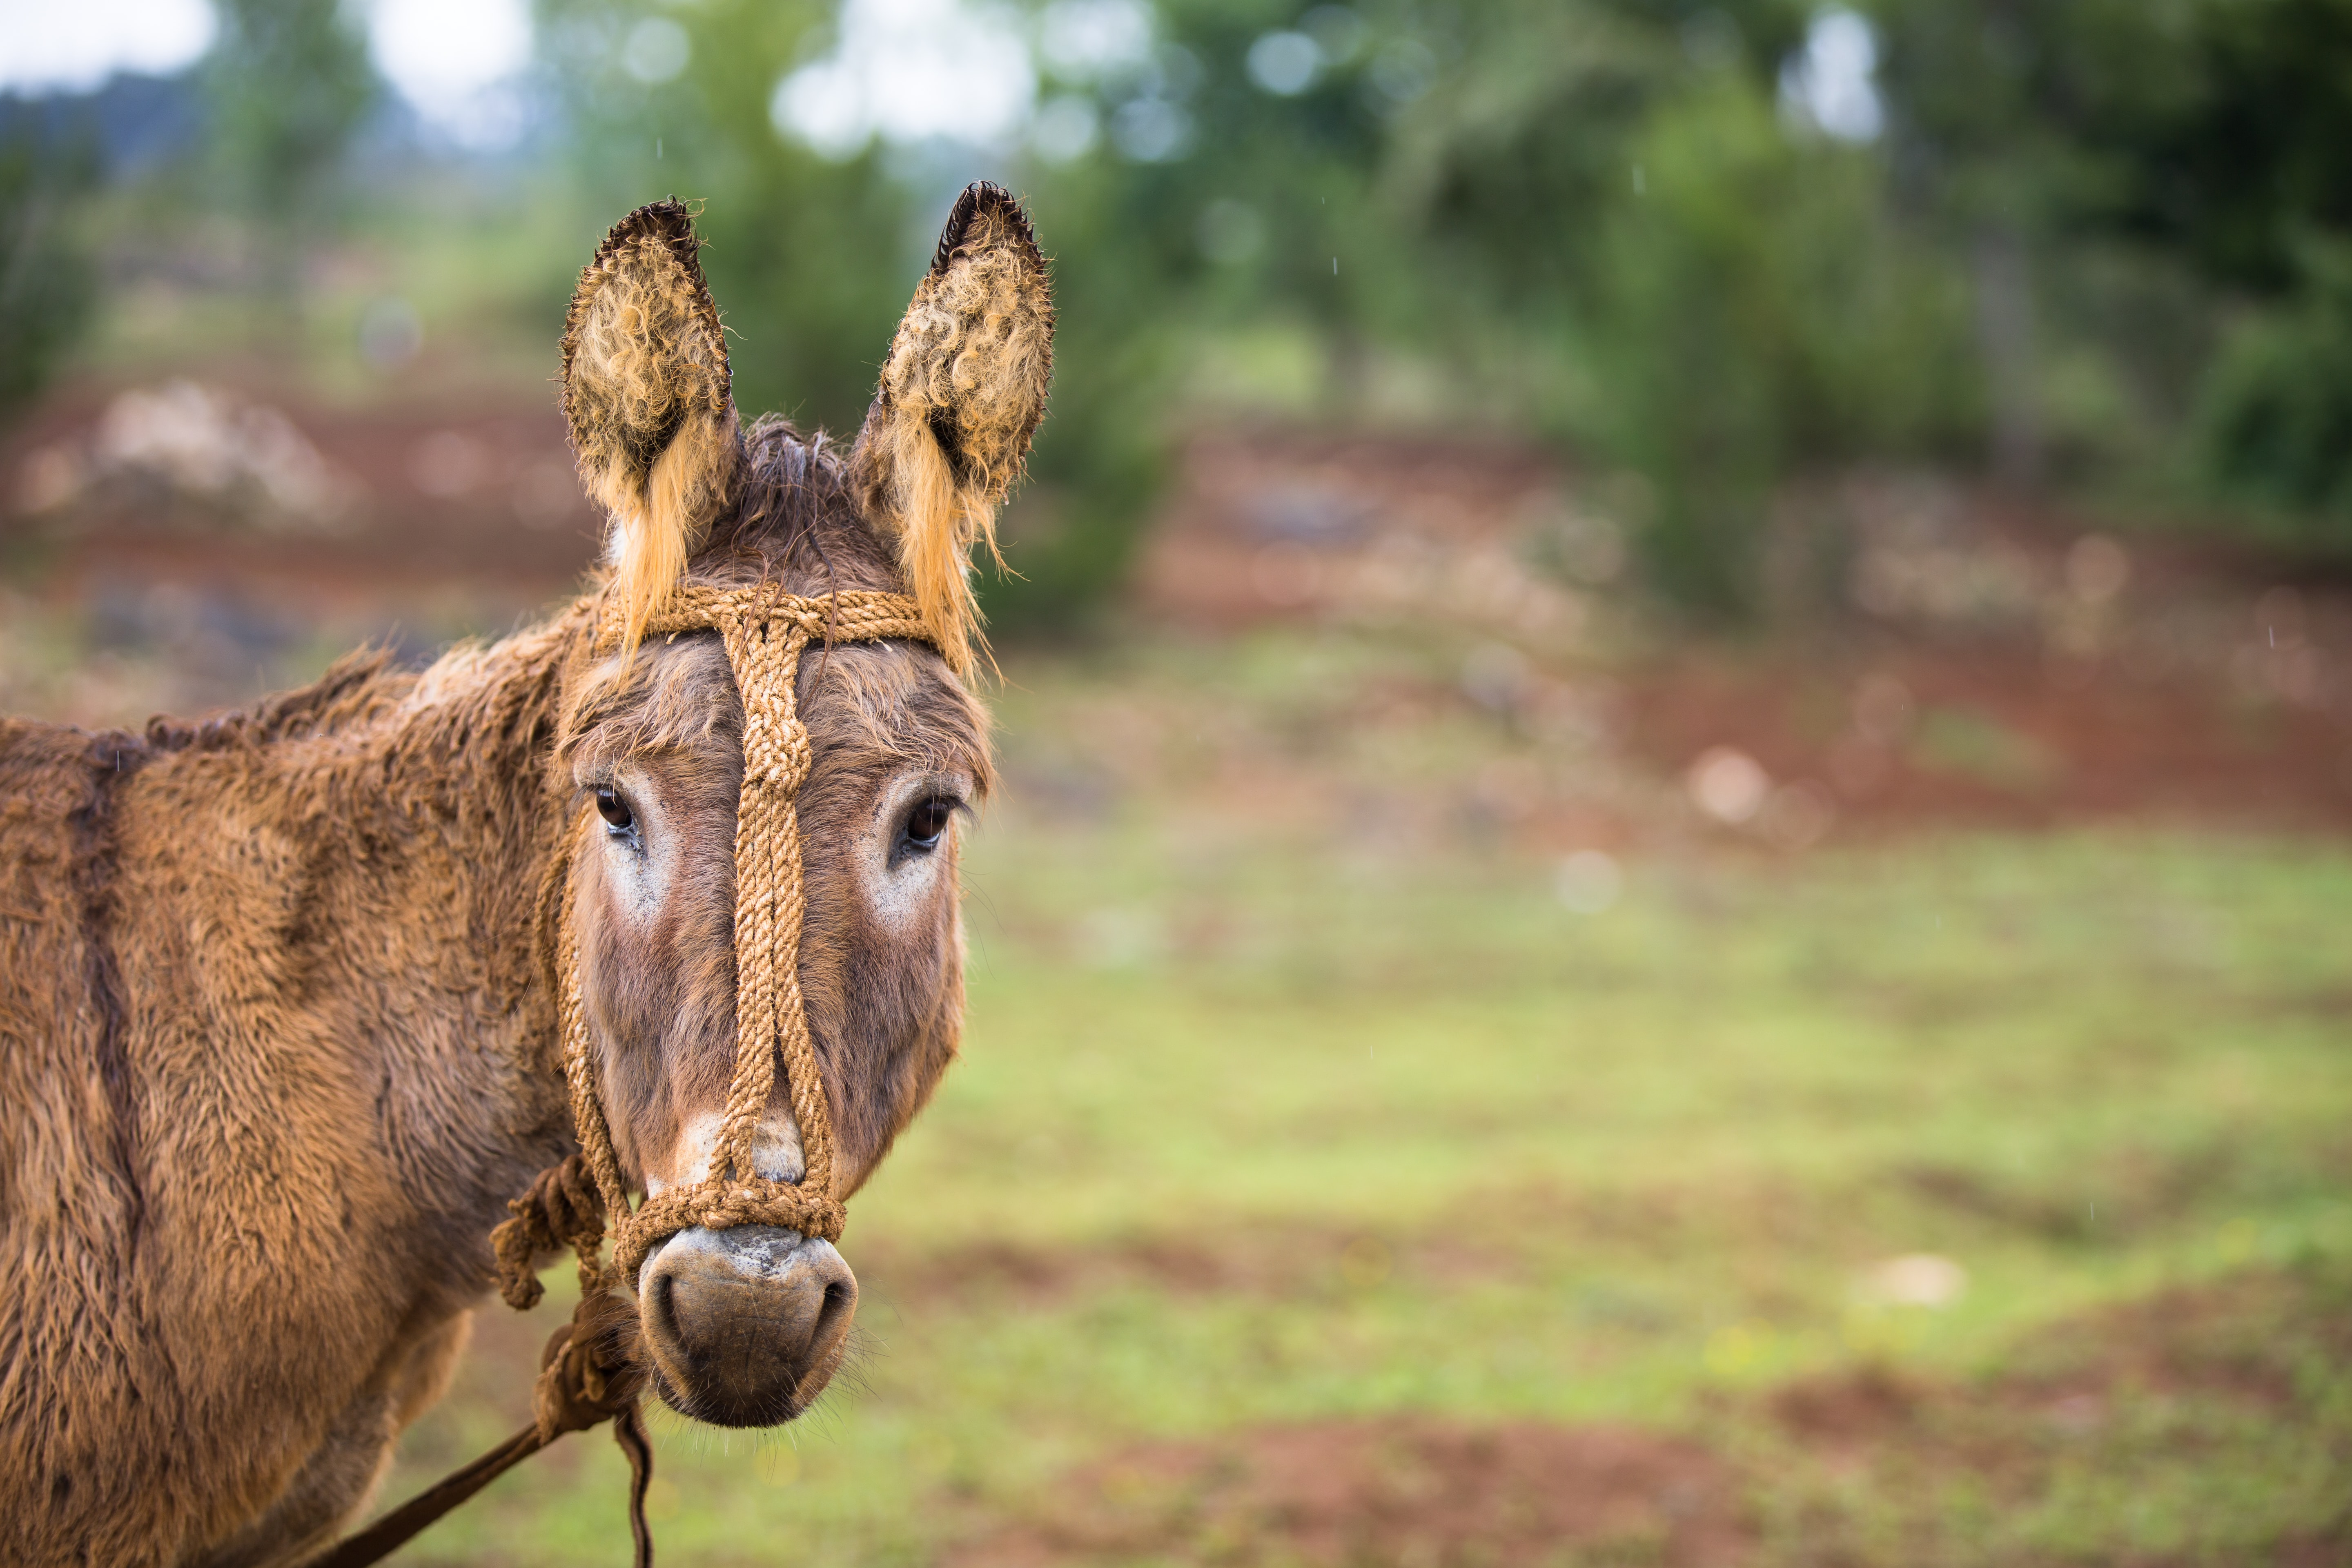 brown donkey standing on grass field